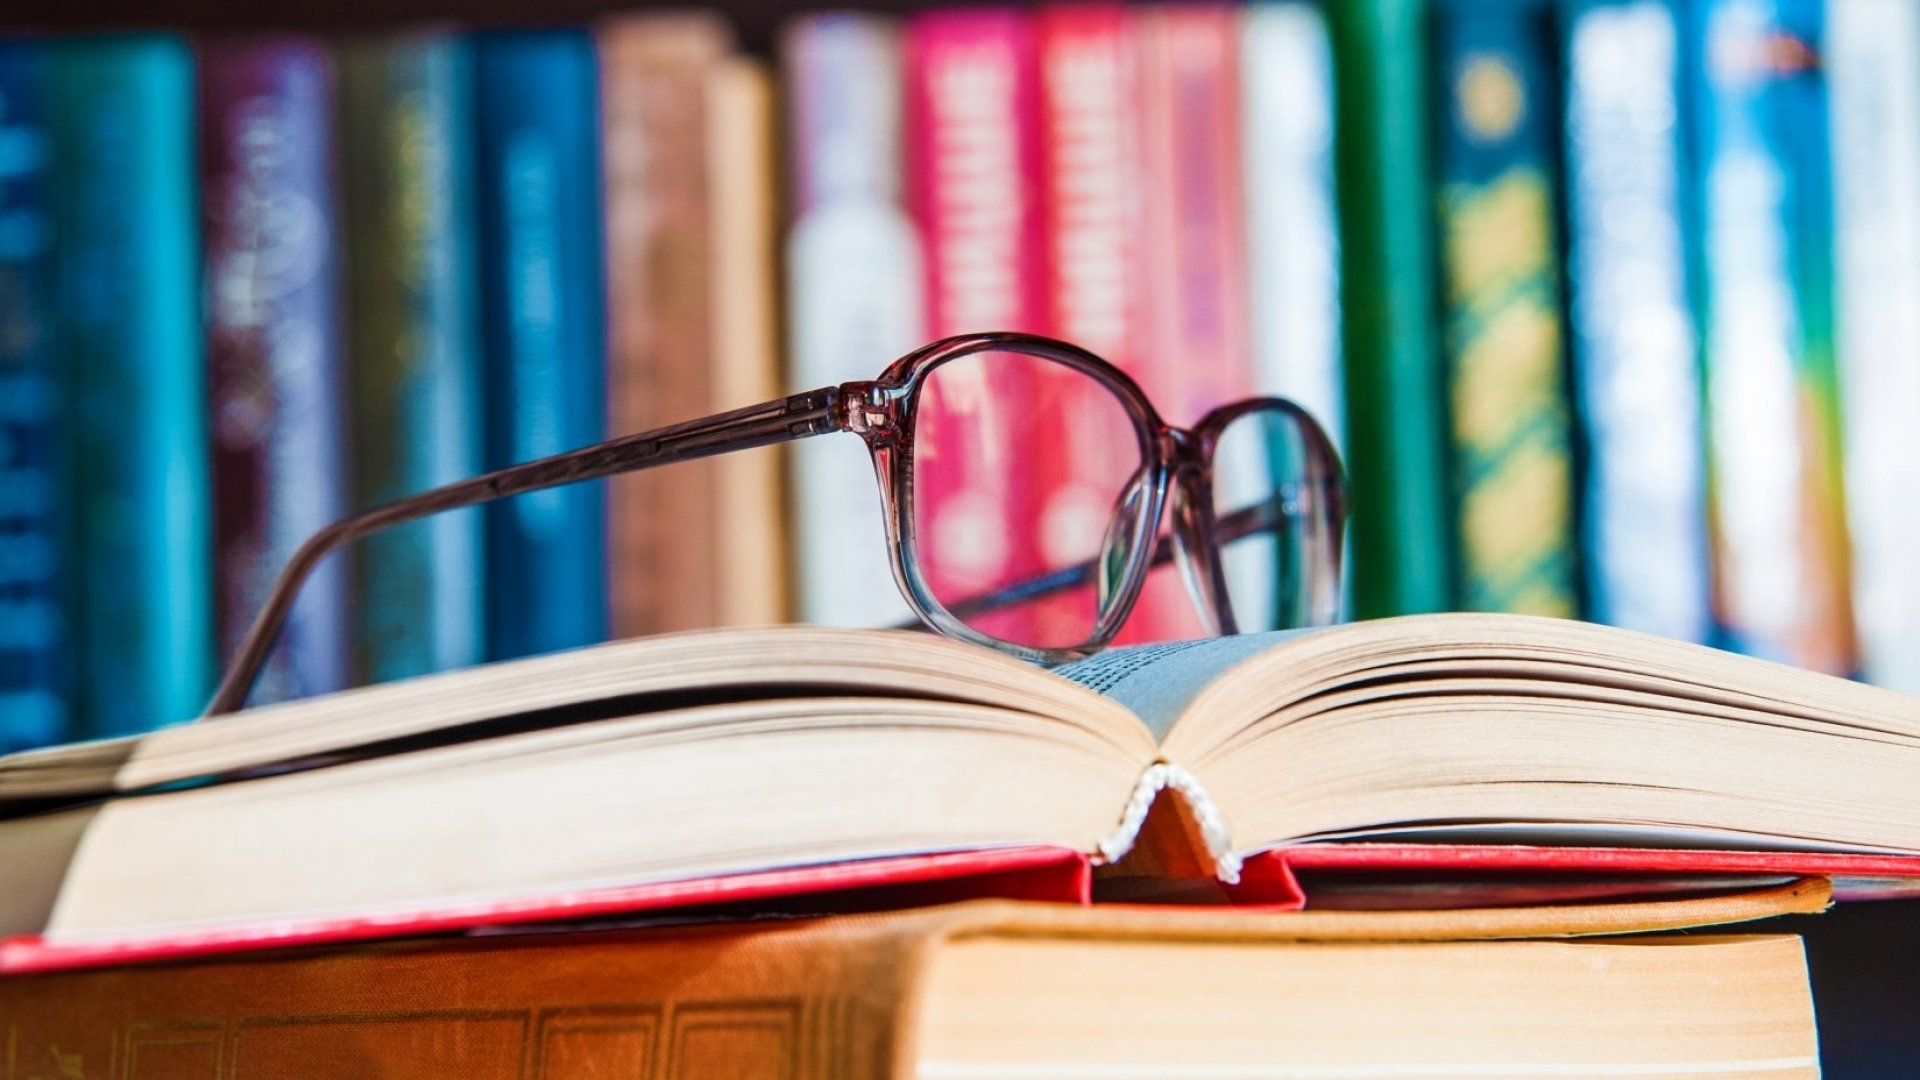 All in the Family: 5 Business Books by Family Successes